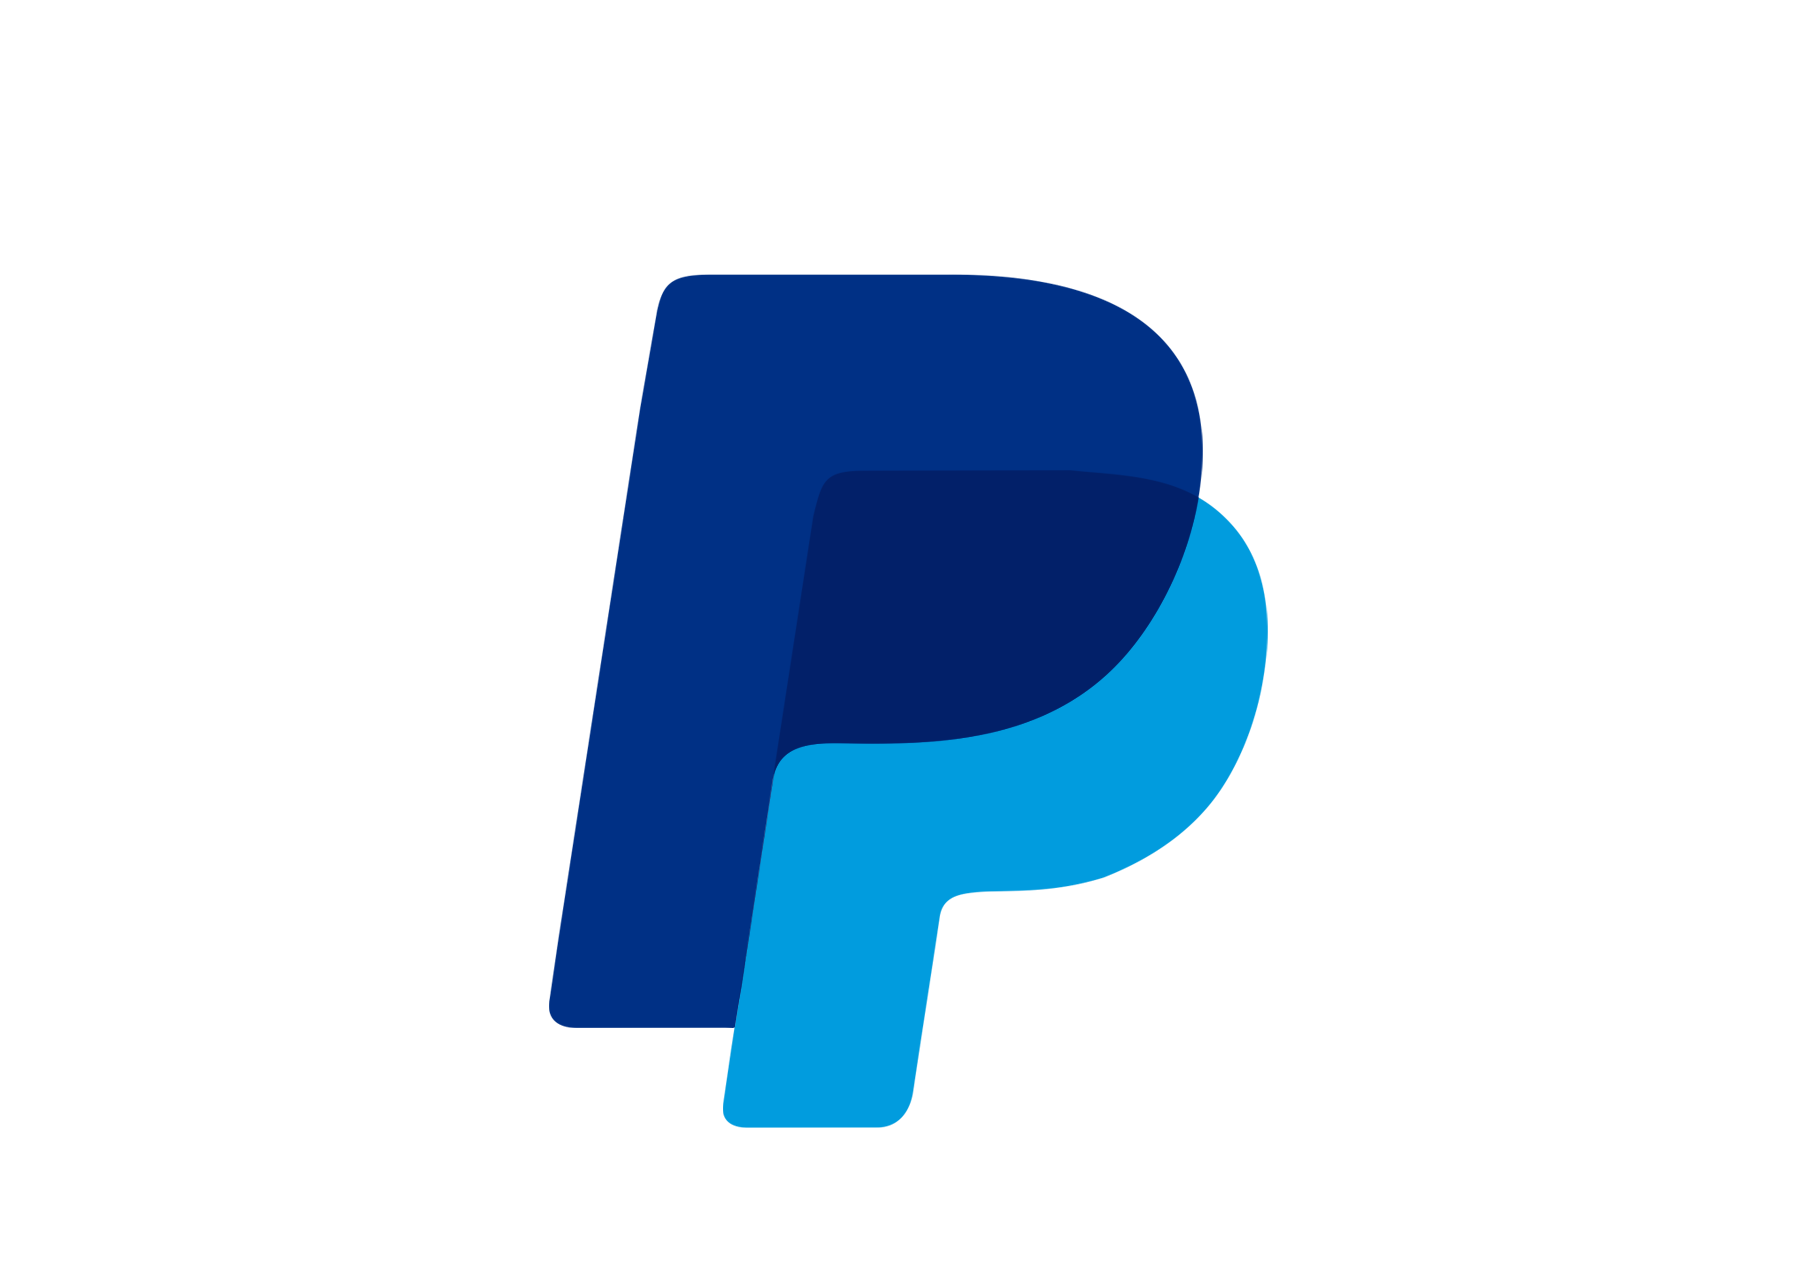 Paypal logo png transparent. Images all